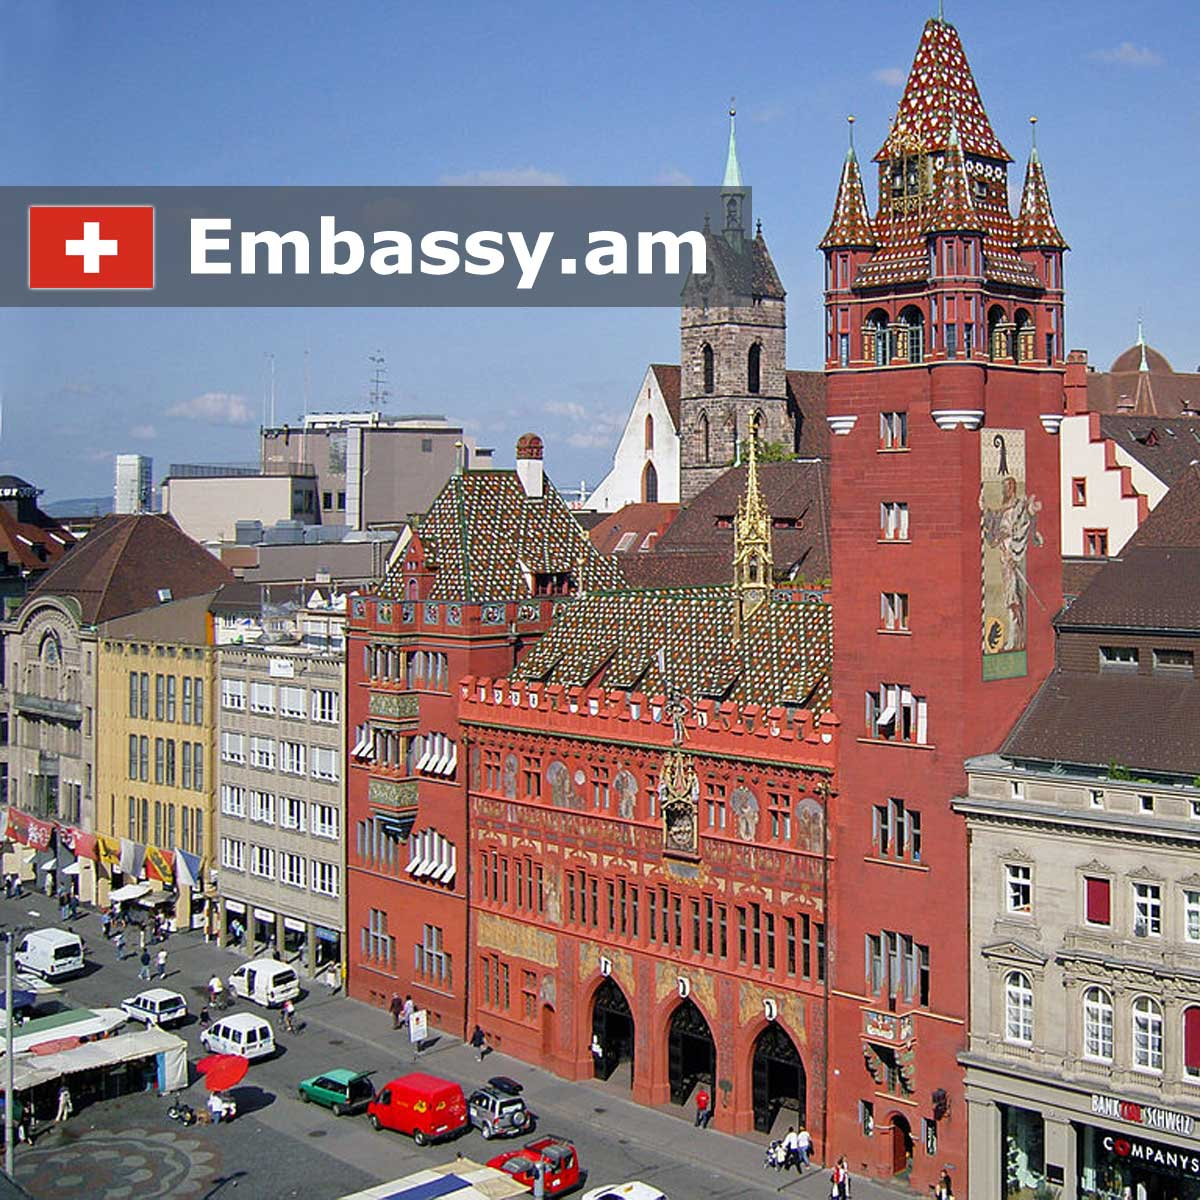 Basel - Hotels in Switzerland - Embassy.am